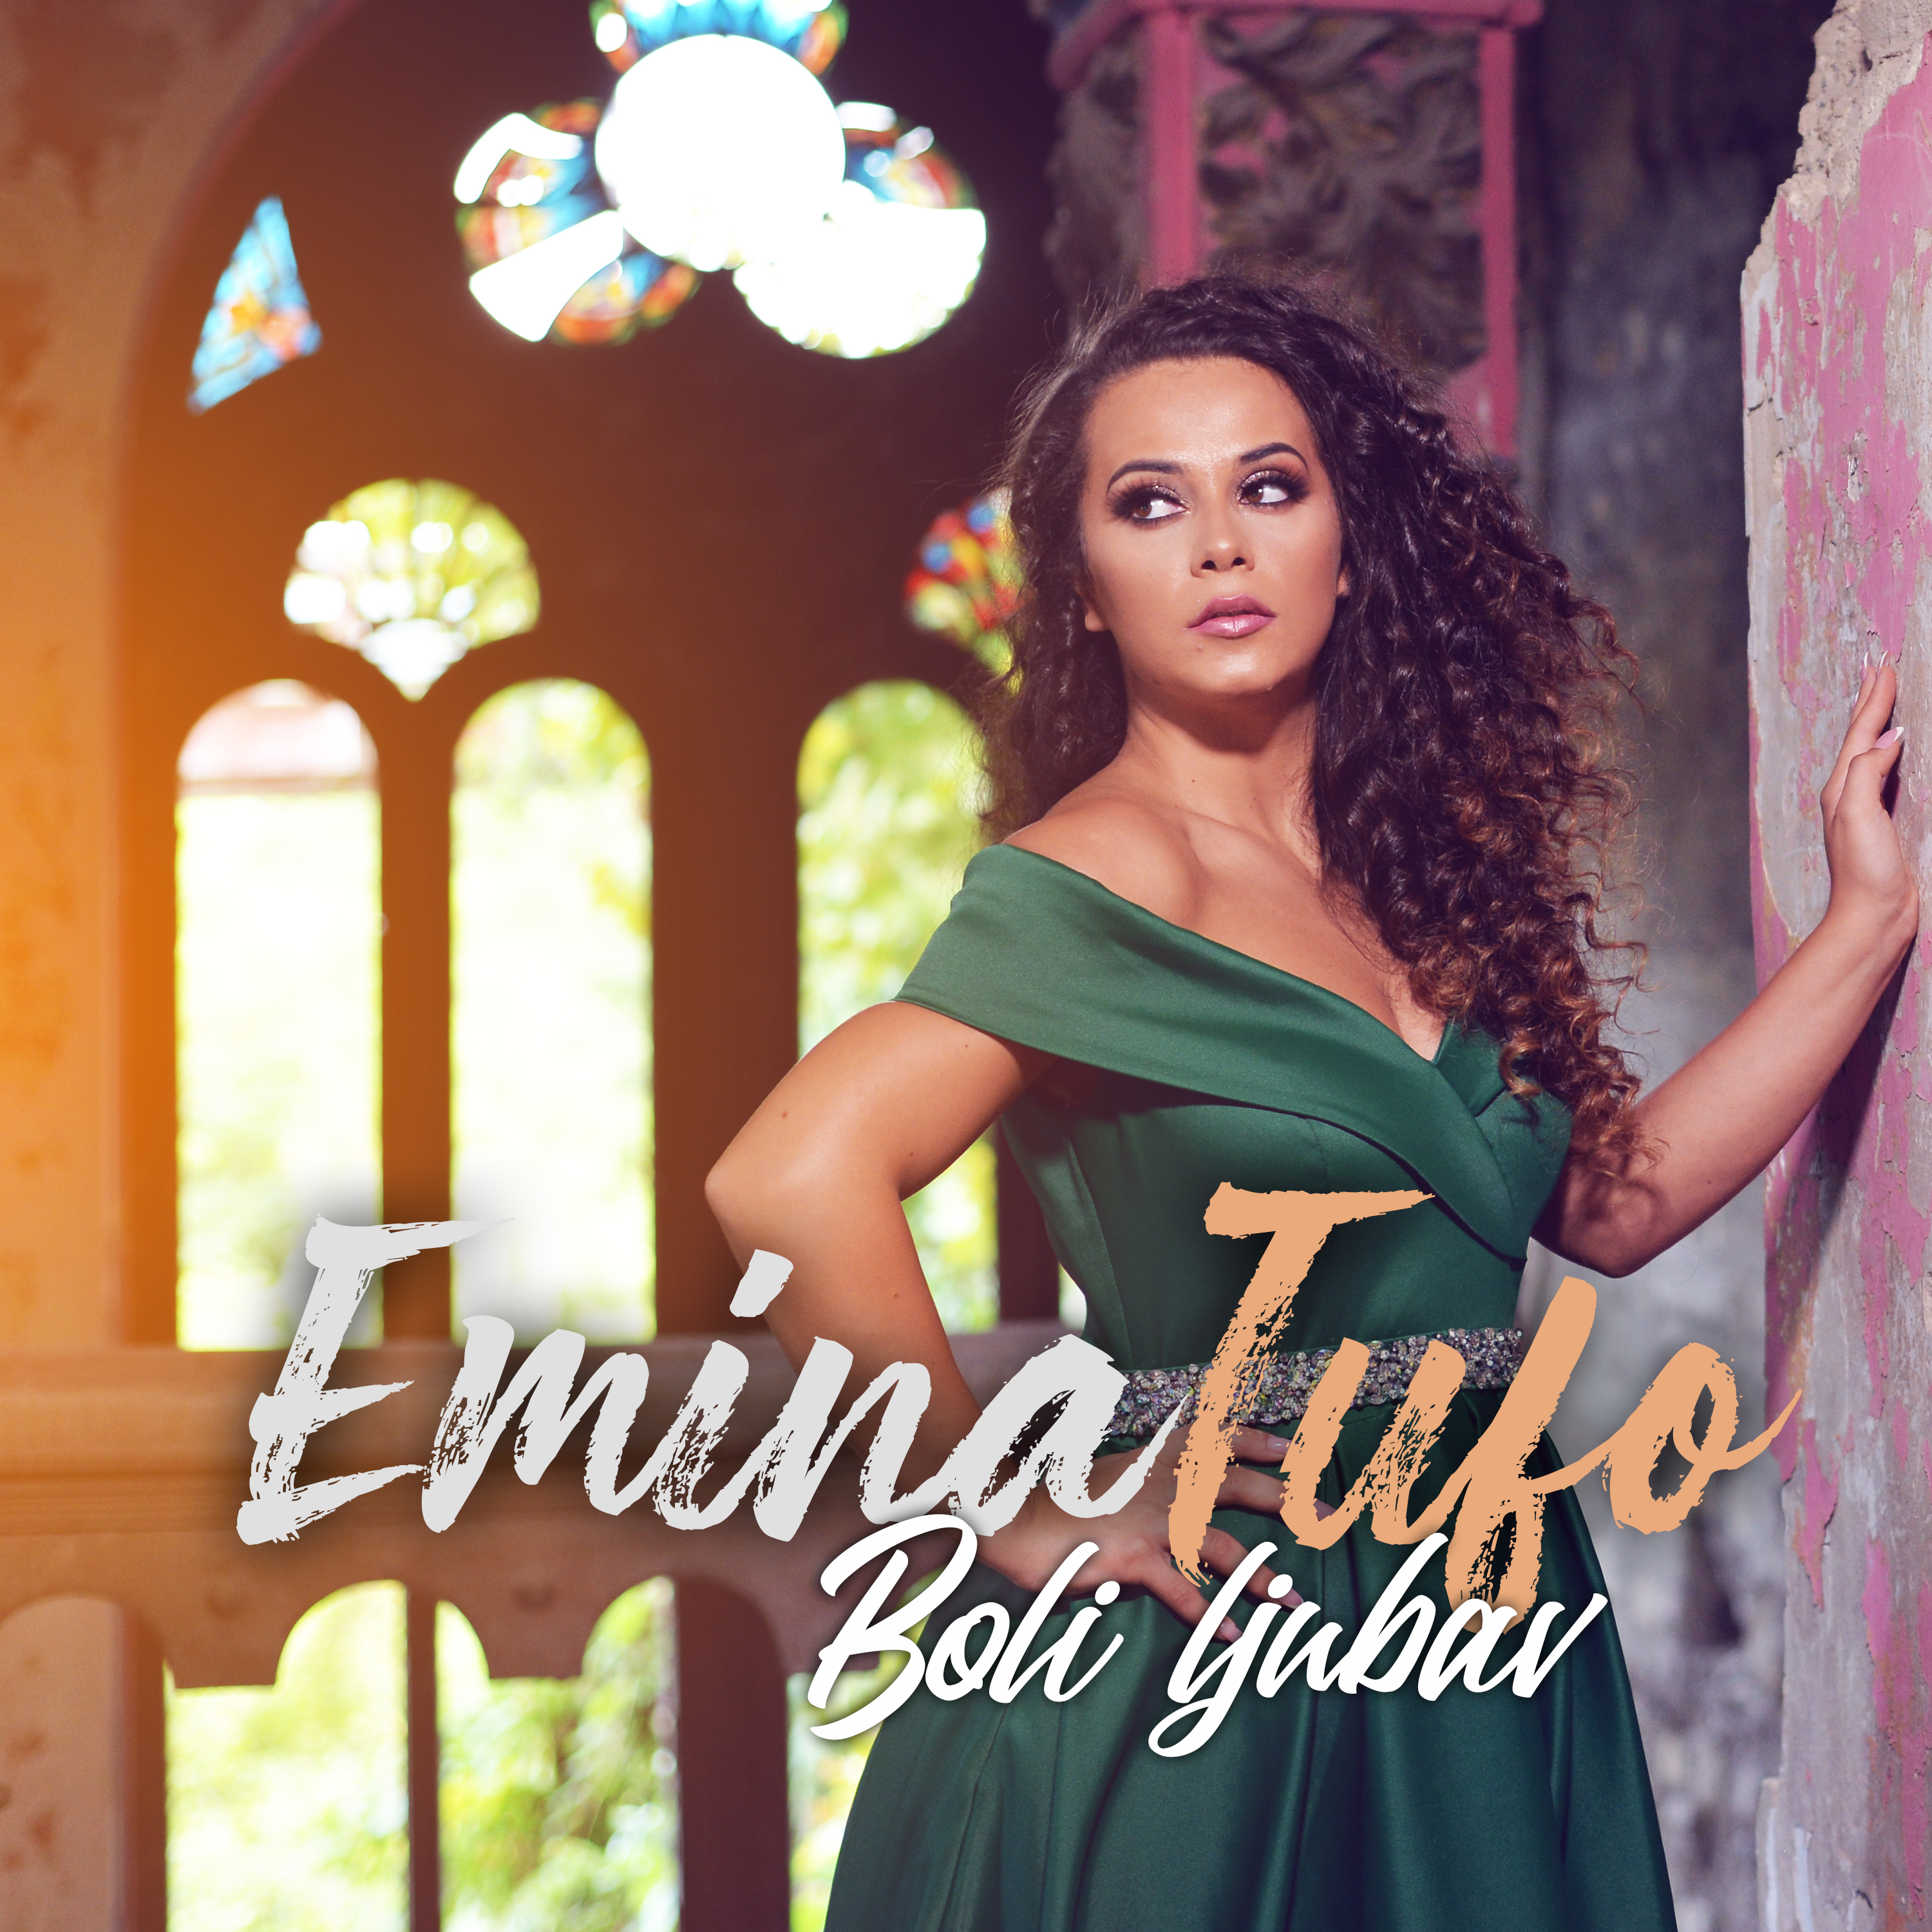 Emina Tufo - Boli ljubav - Listen on Spotify, Deezer, YouTube, Google Play Music and Buy on Amazon, iTunes Google Play | EMDC Network